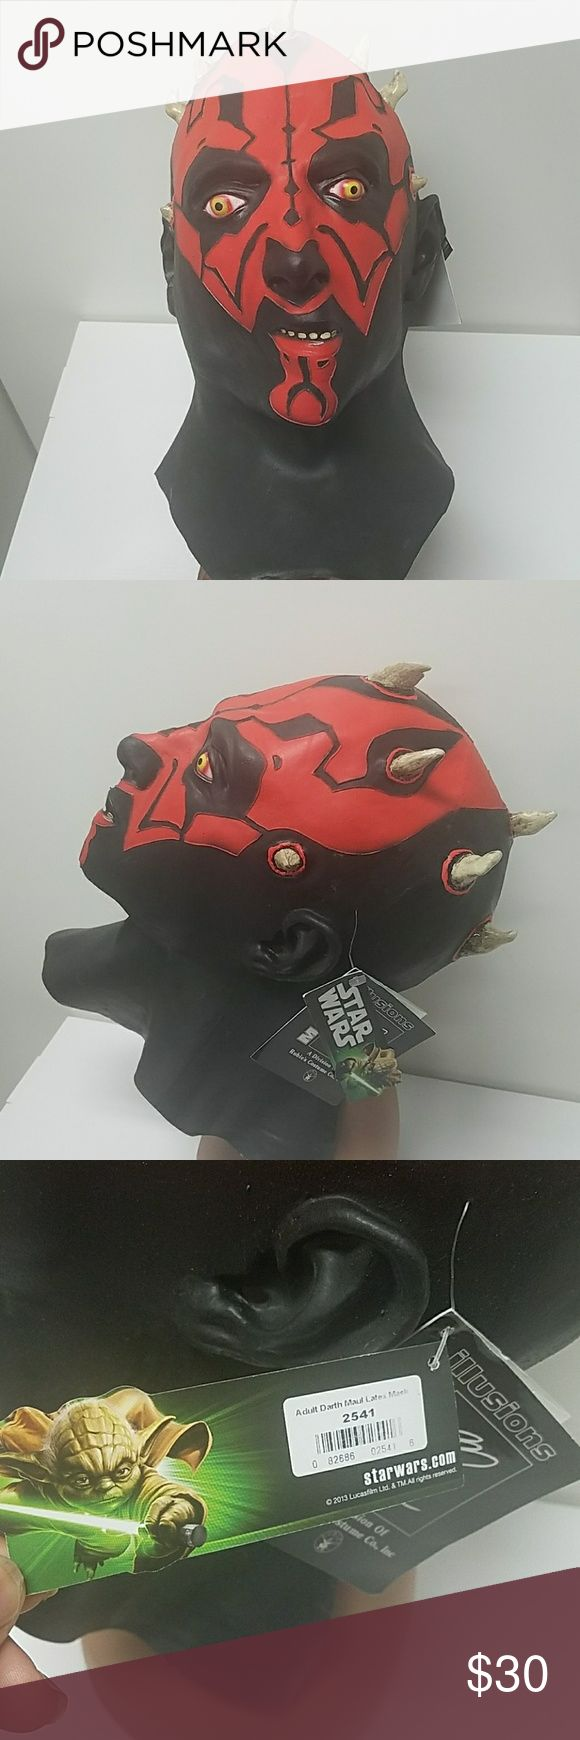 Star Wars Darth Maul adult mask. This mass is in good used condition. Please refer to the pictures. Star Wars mask Other